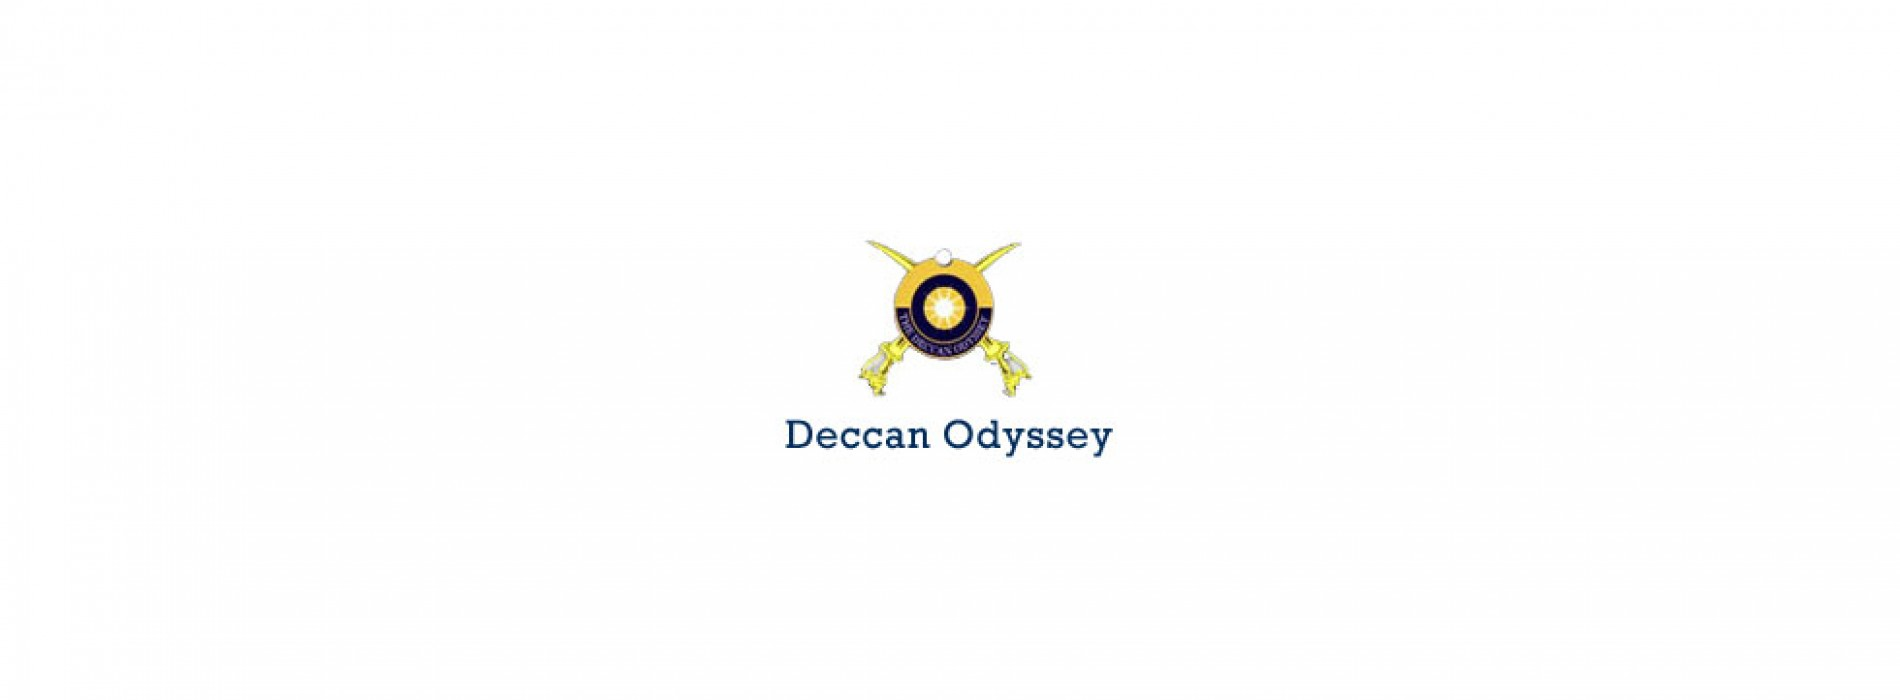 Deccan Odyssey rolls out its Attractive Companion Offer